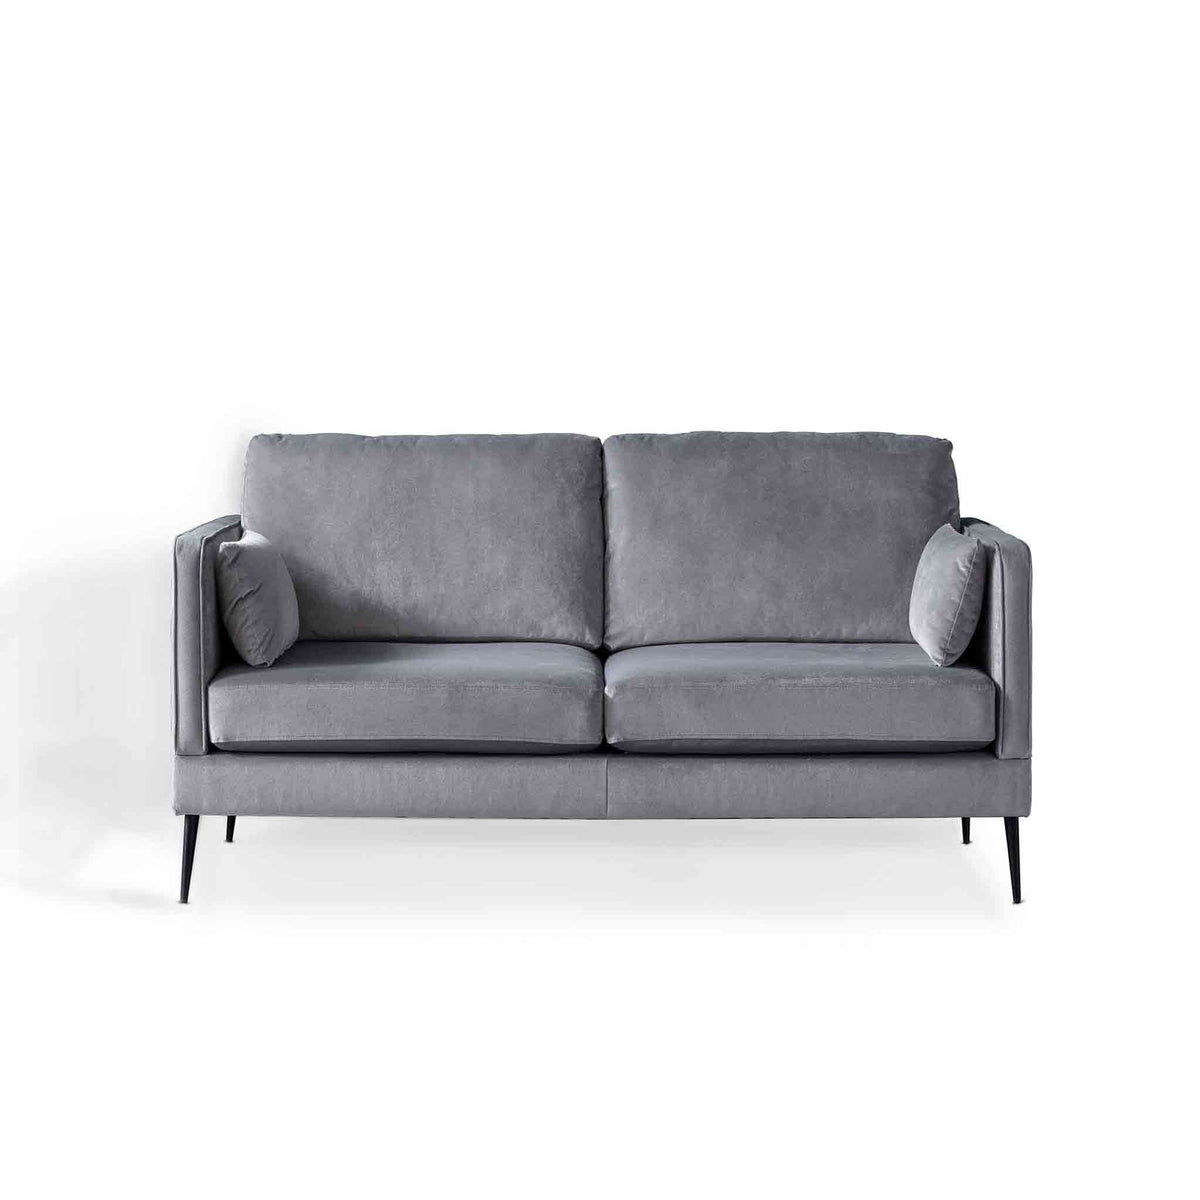 Anton Grey 2 Seater Sofa by Roseland Furniture